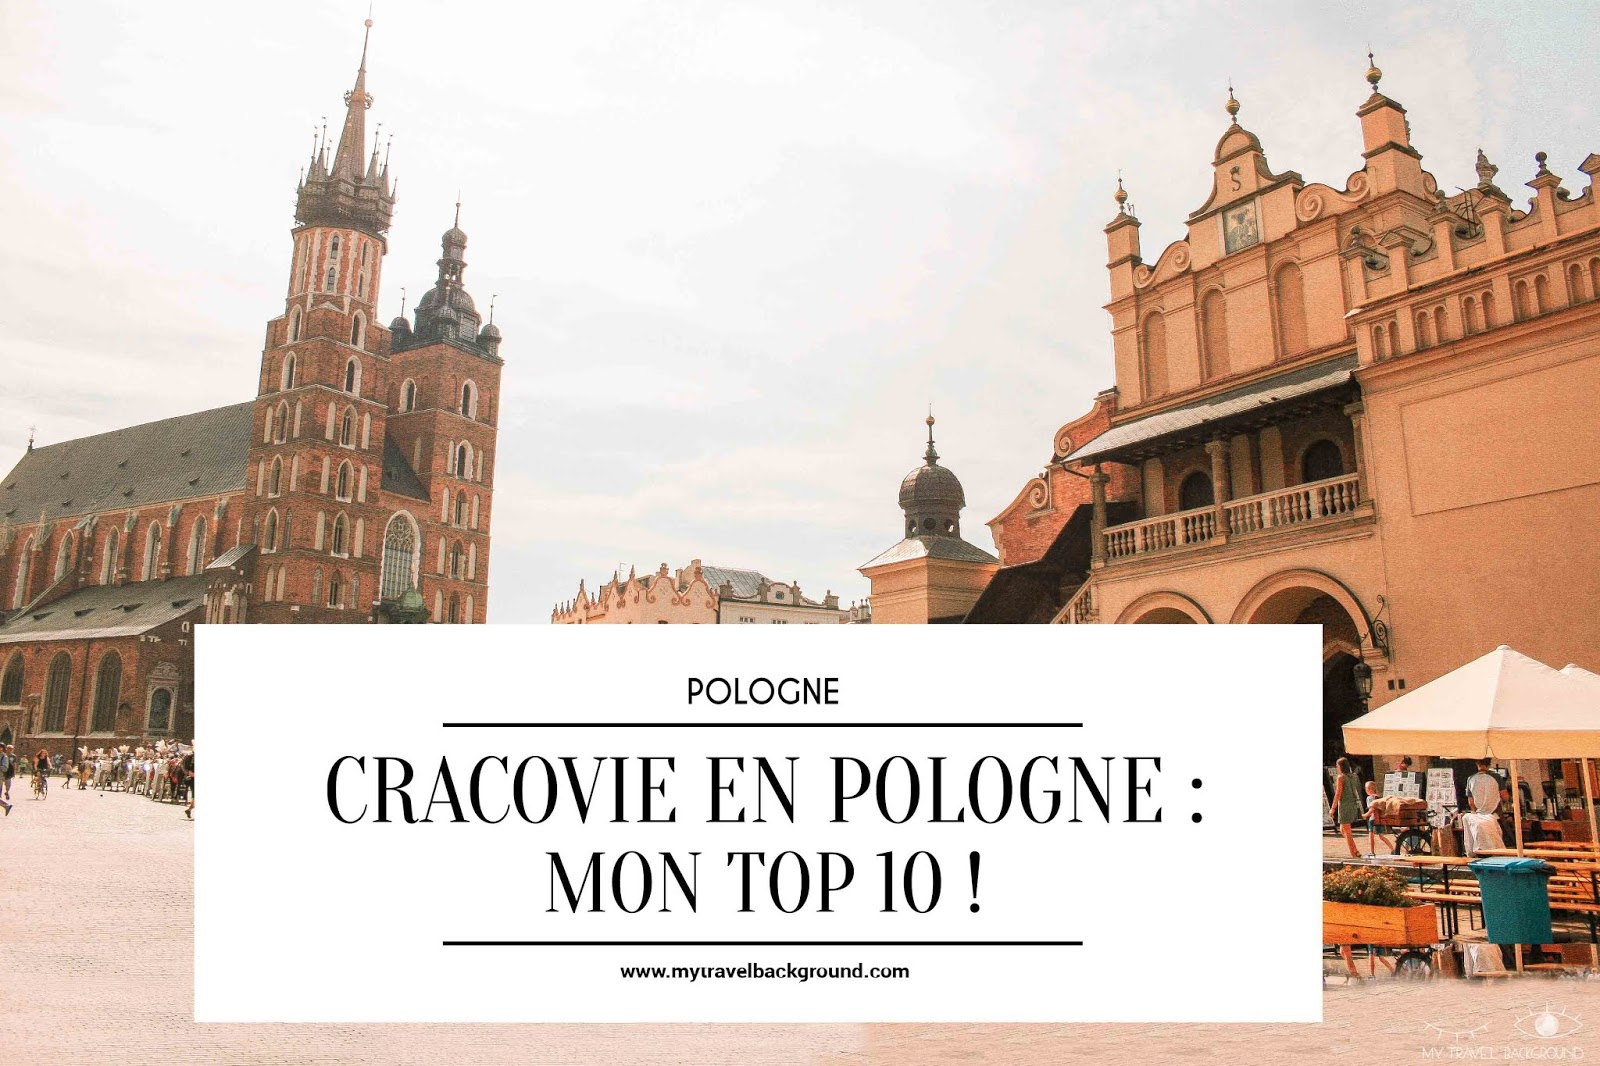 My Travel Background : Cracovie en Pologne, mon top 10 pour visiter la ville